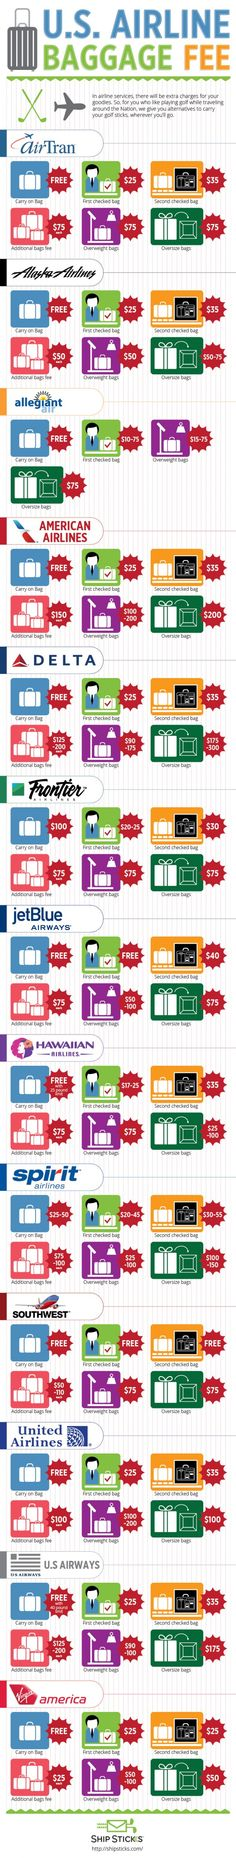 U.S. Airline Baggage Fees (Infographic) - ShipSticks travel